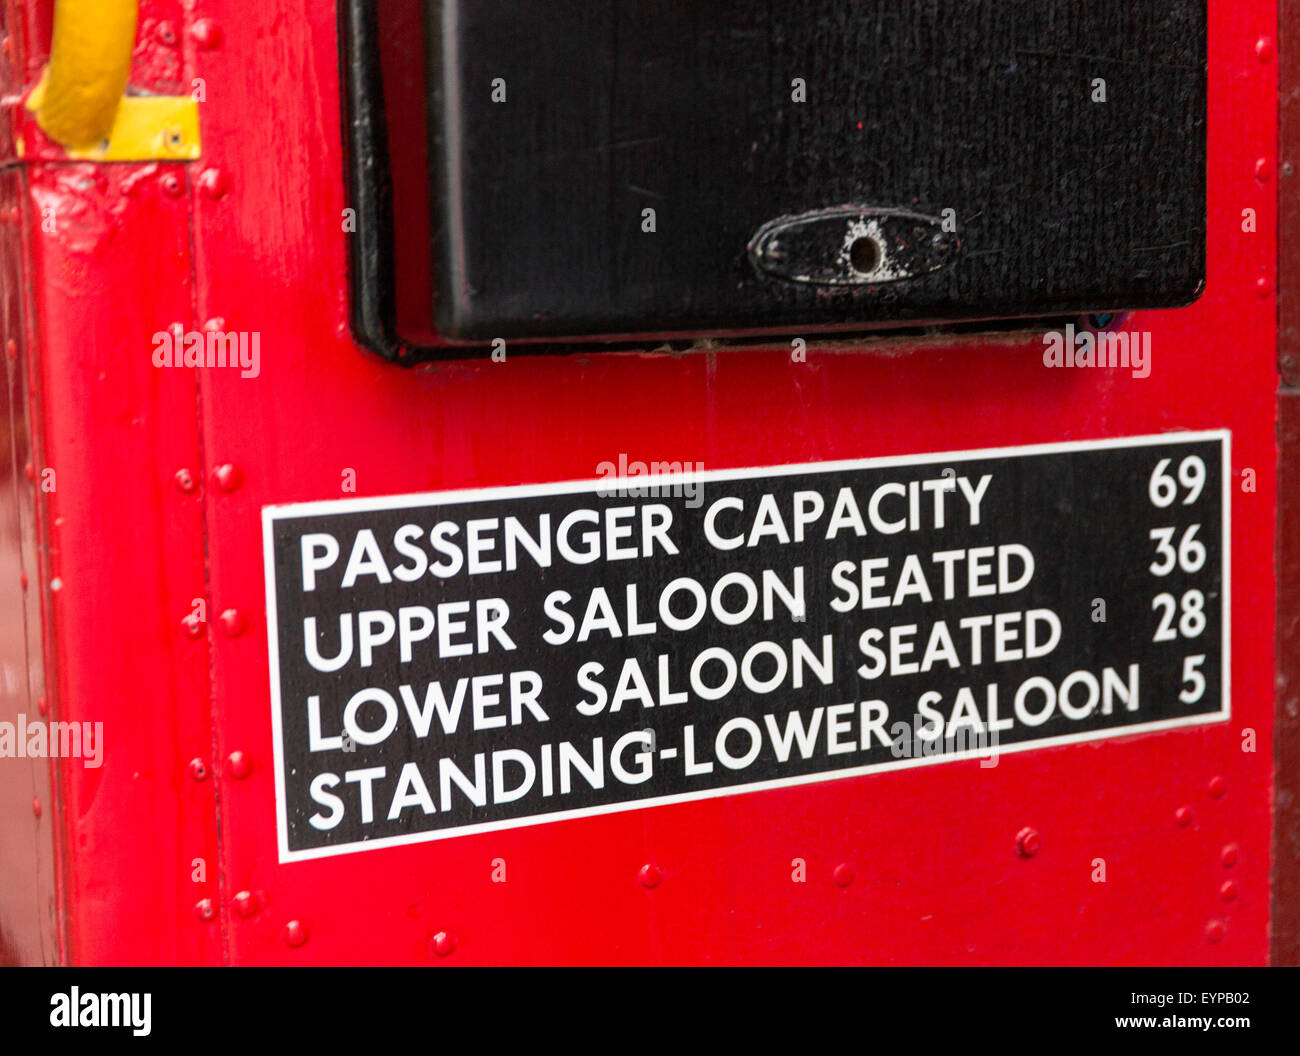 Capacity sign at entry of classic red Routemaster double-decker bus in London, England, UK - Stock Image